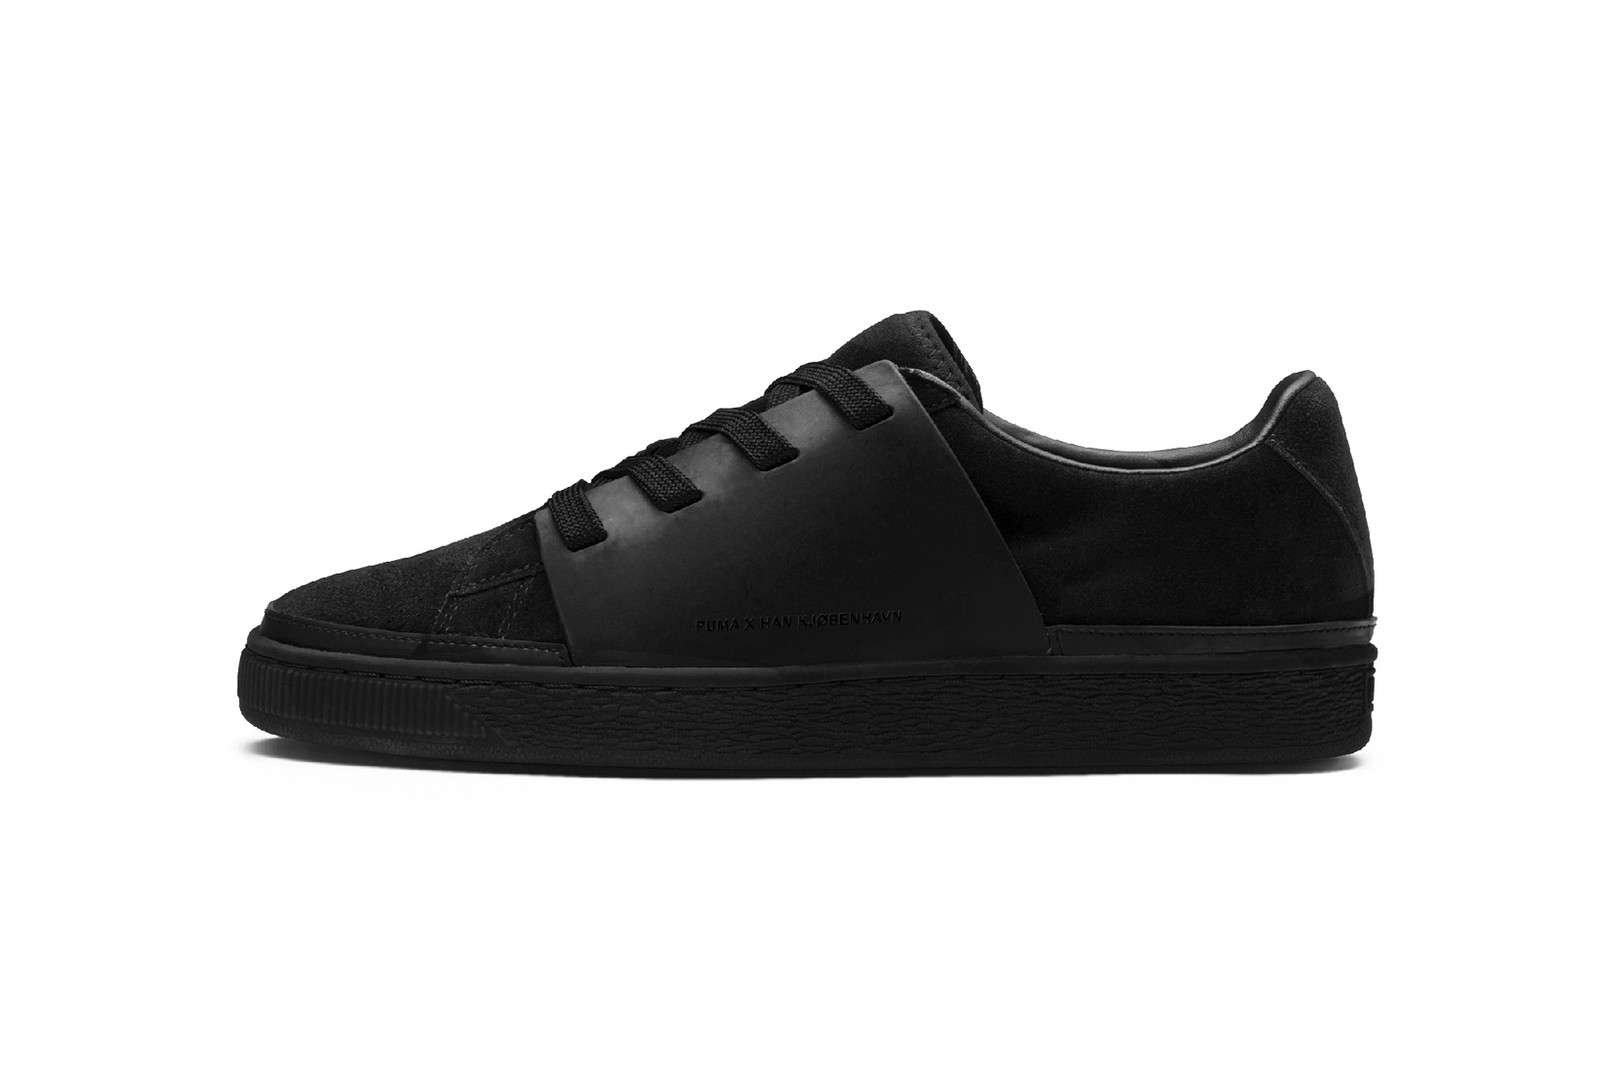 Han Kjobenhavn PUMA Spring Summer 2018 Collection collaboration release date info drop sneakers shoes footwear Suede Court Leadcat TSUGI Mi Abyss